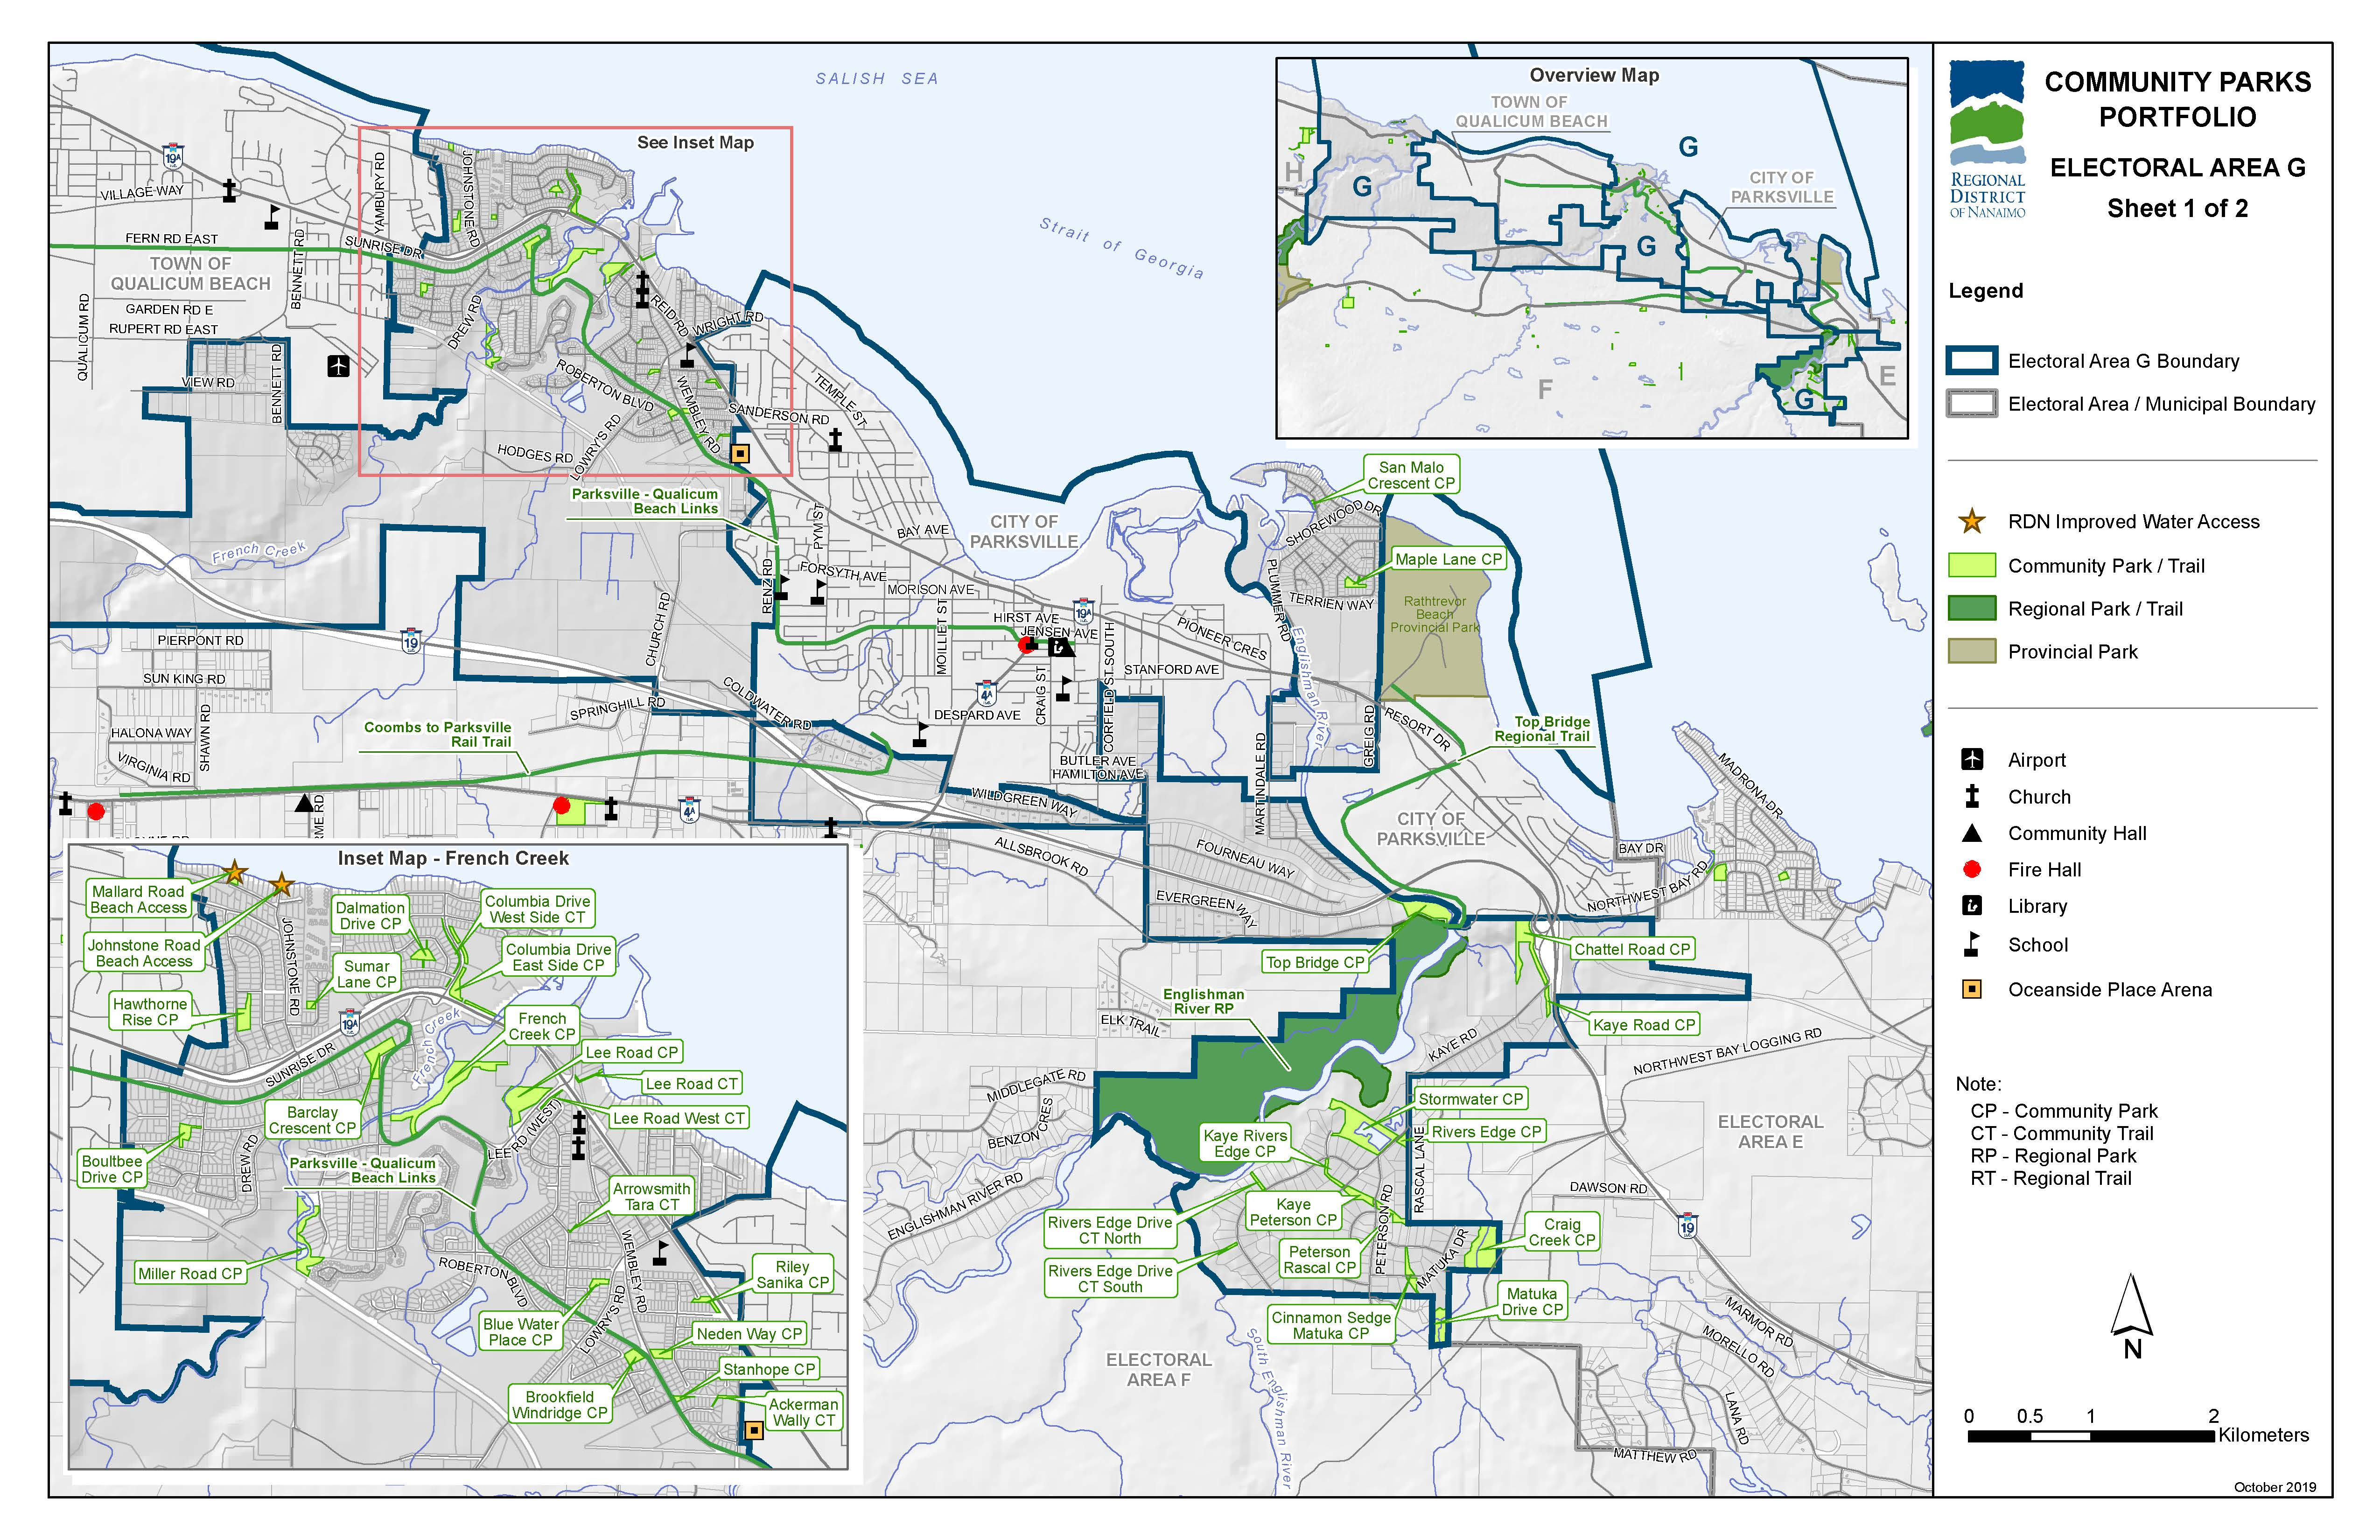 Community Parks and Trails in Area G (East)